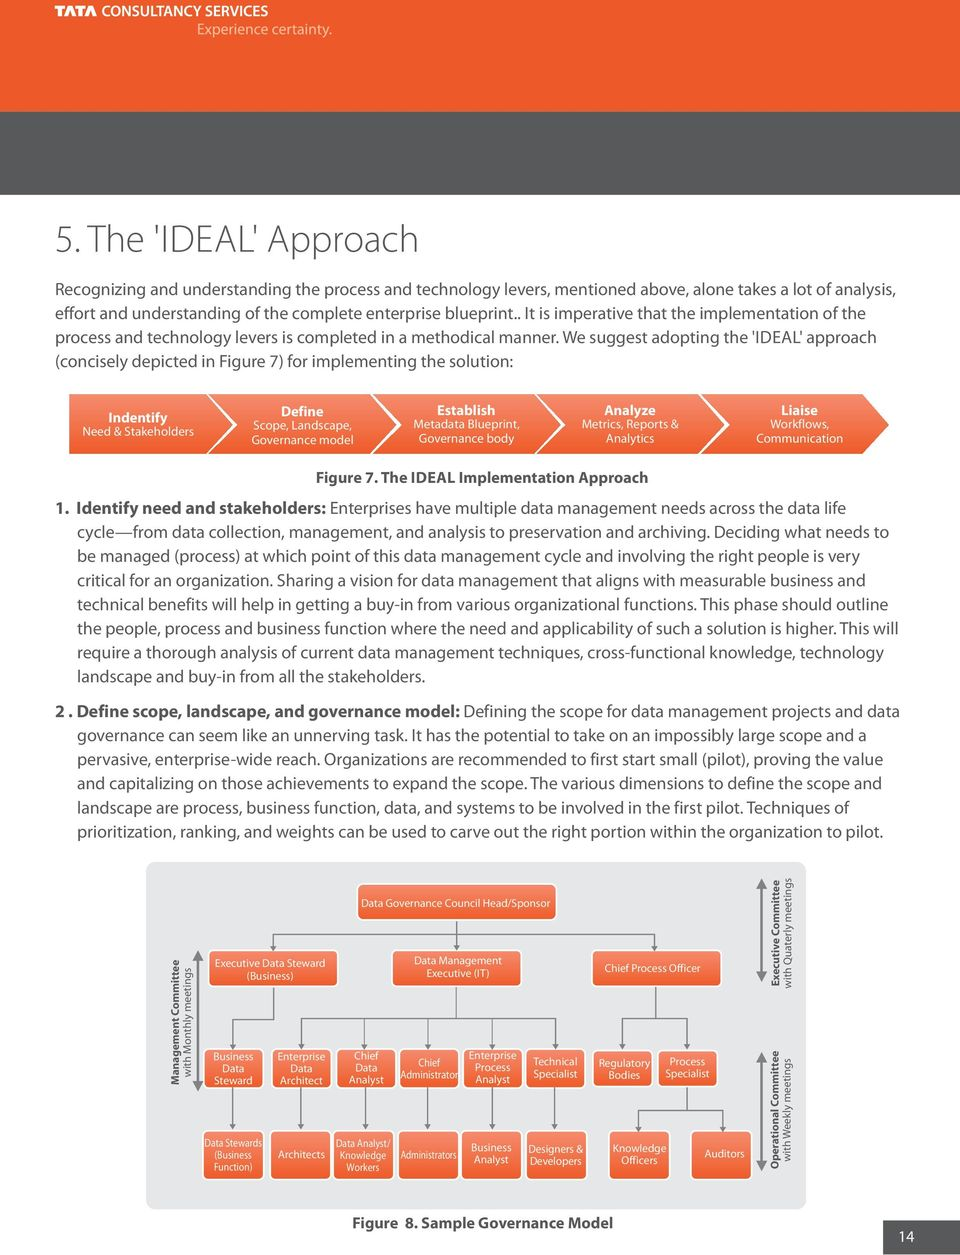 We suggest adopting the 'IDEAL' approach (concisely depicted in Figure 7) for implementing the solution: Indentify Need & Stakeholders Define Scope, Landscape, Governance model Establish Metadata